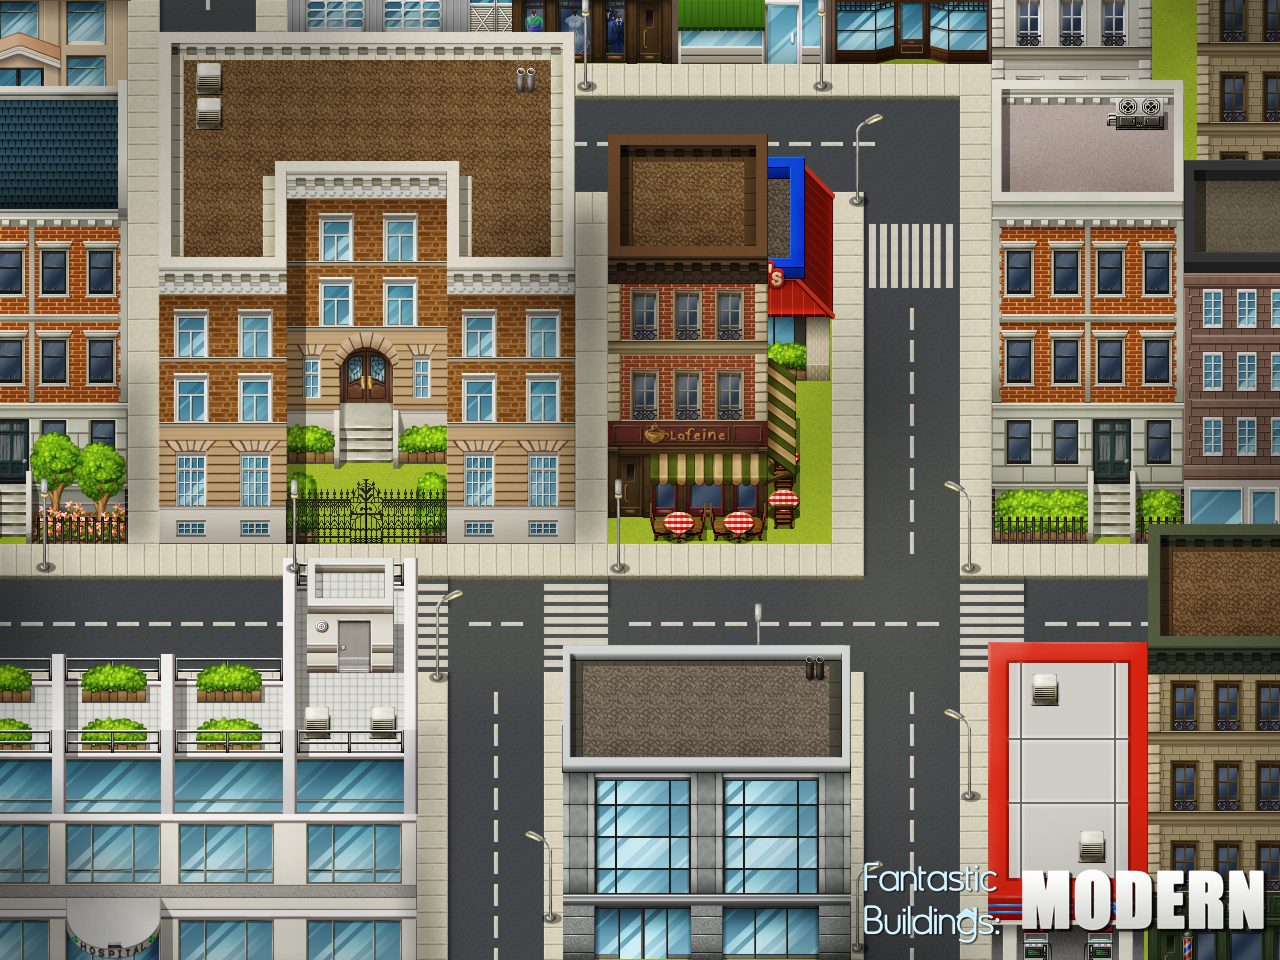 Fantastic buildings modern by pinkfirefly on deviantart for Apartment complex map maker